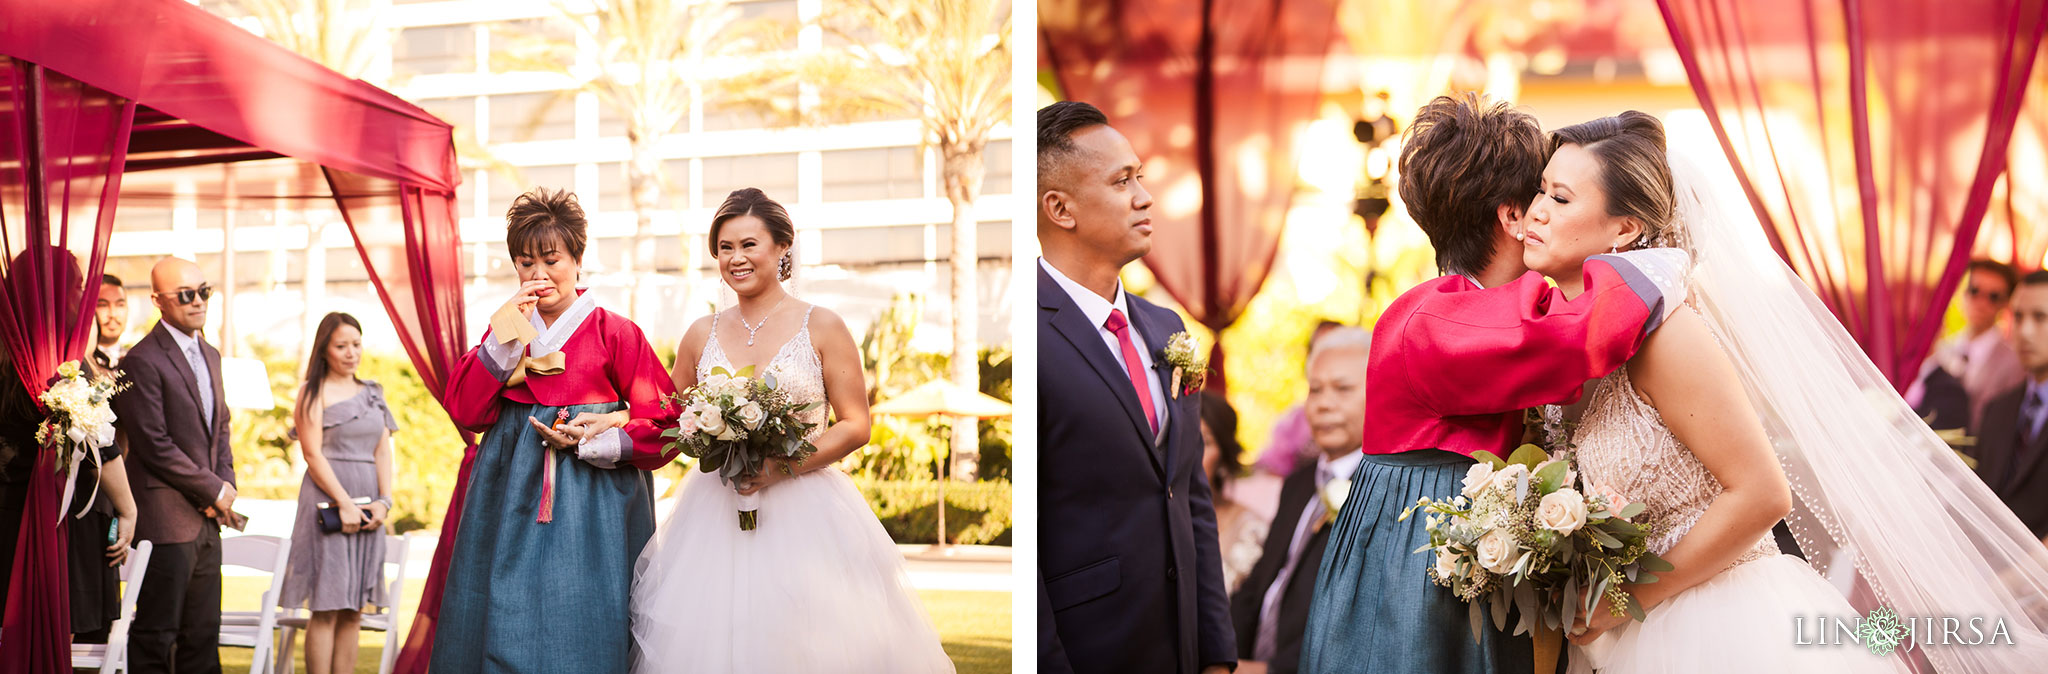 25 Hotel Irvine Orange County Wedding Photography